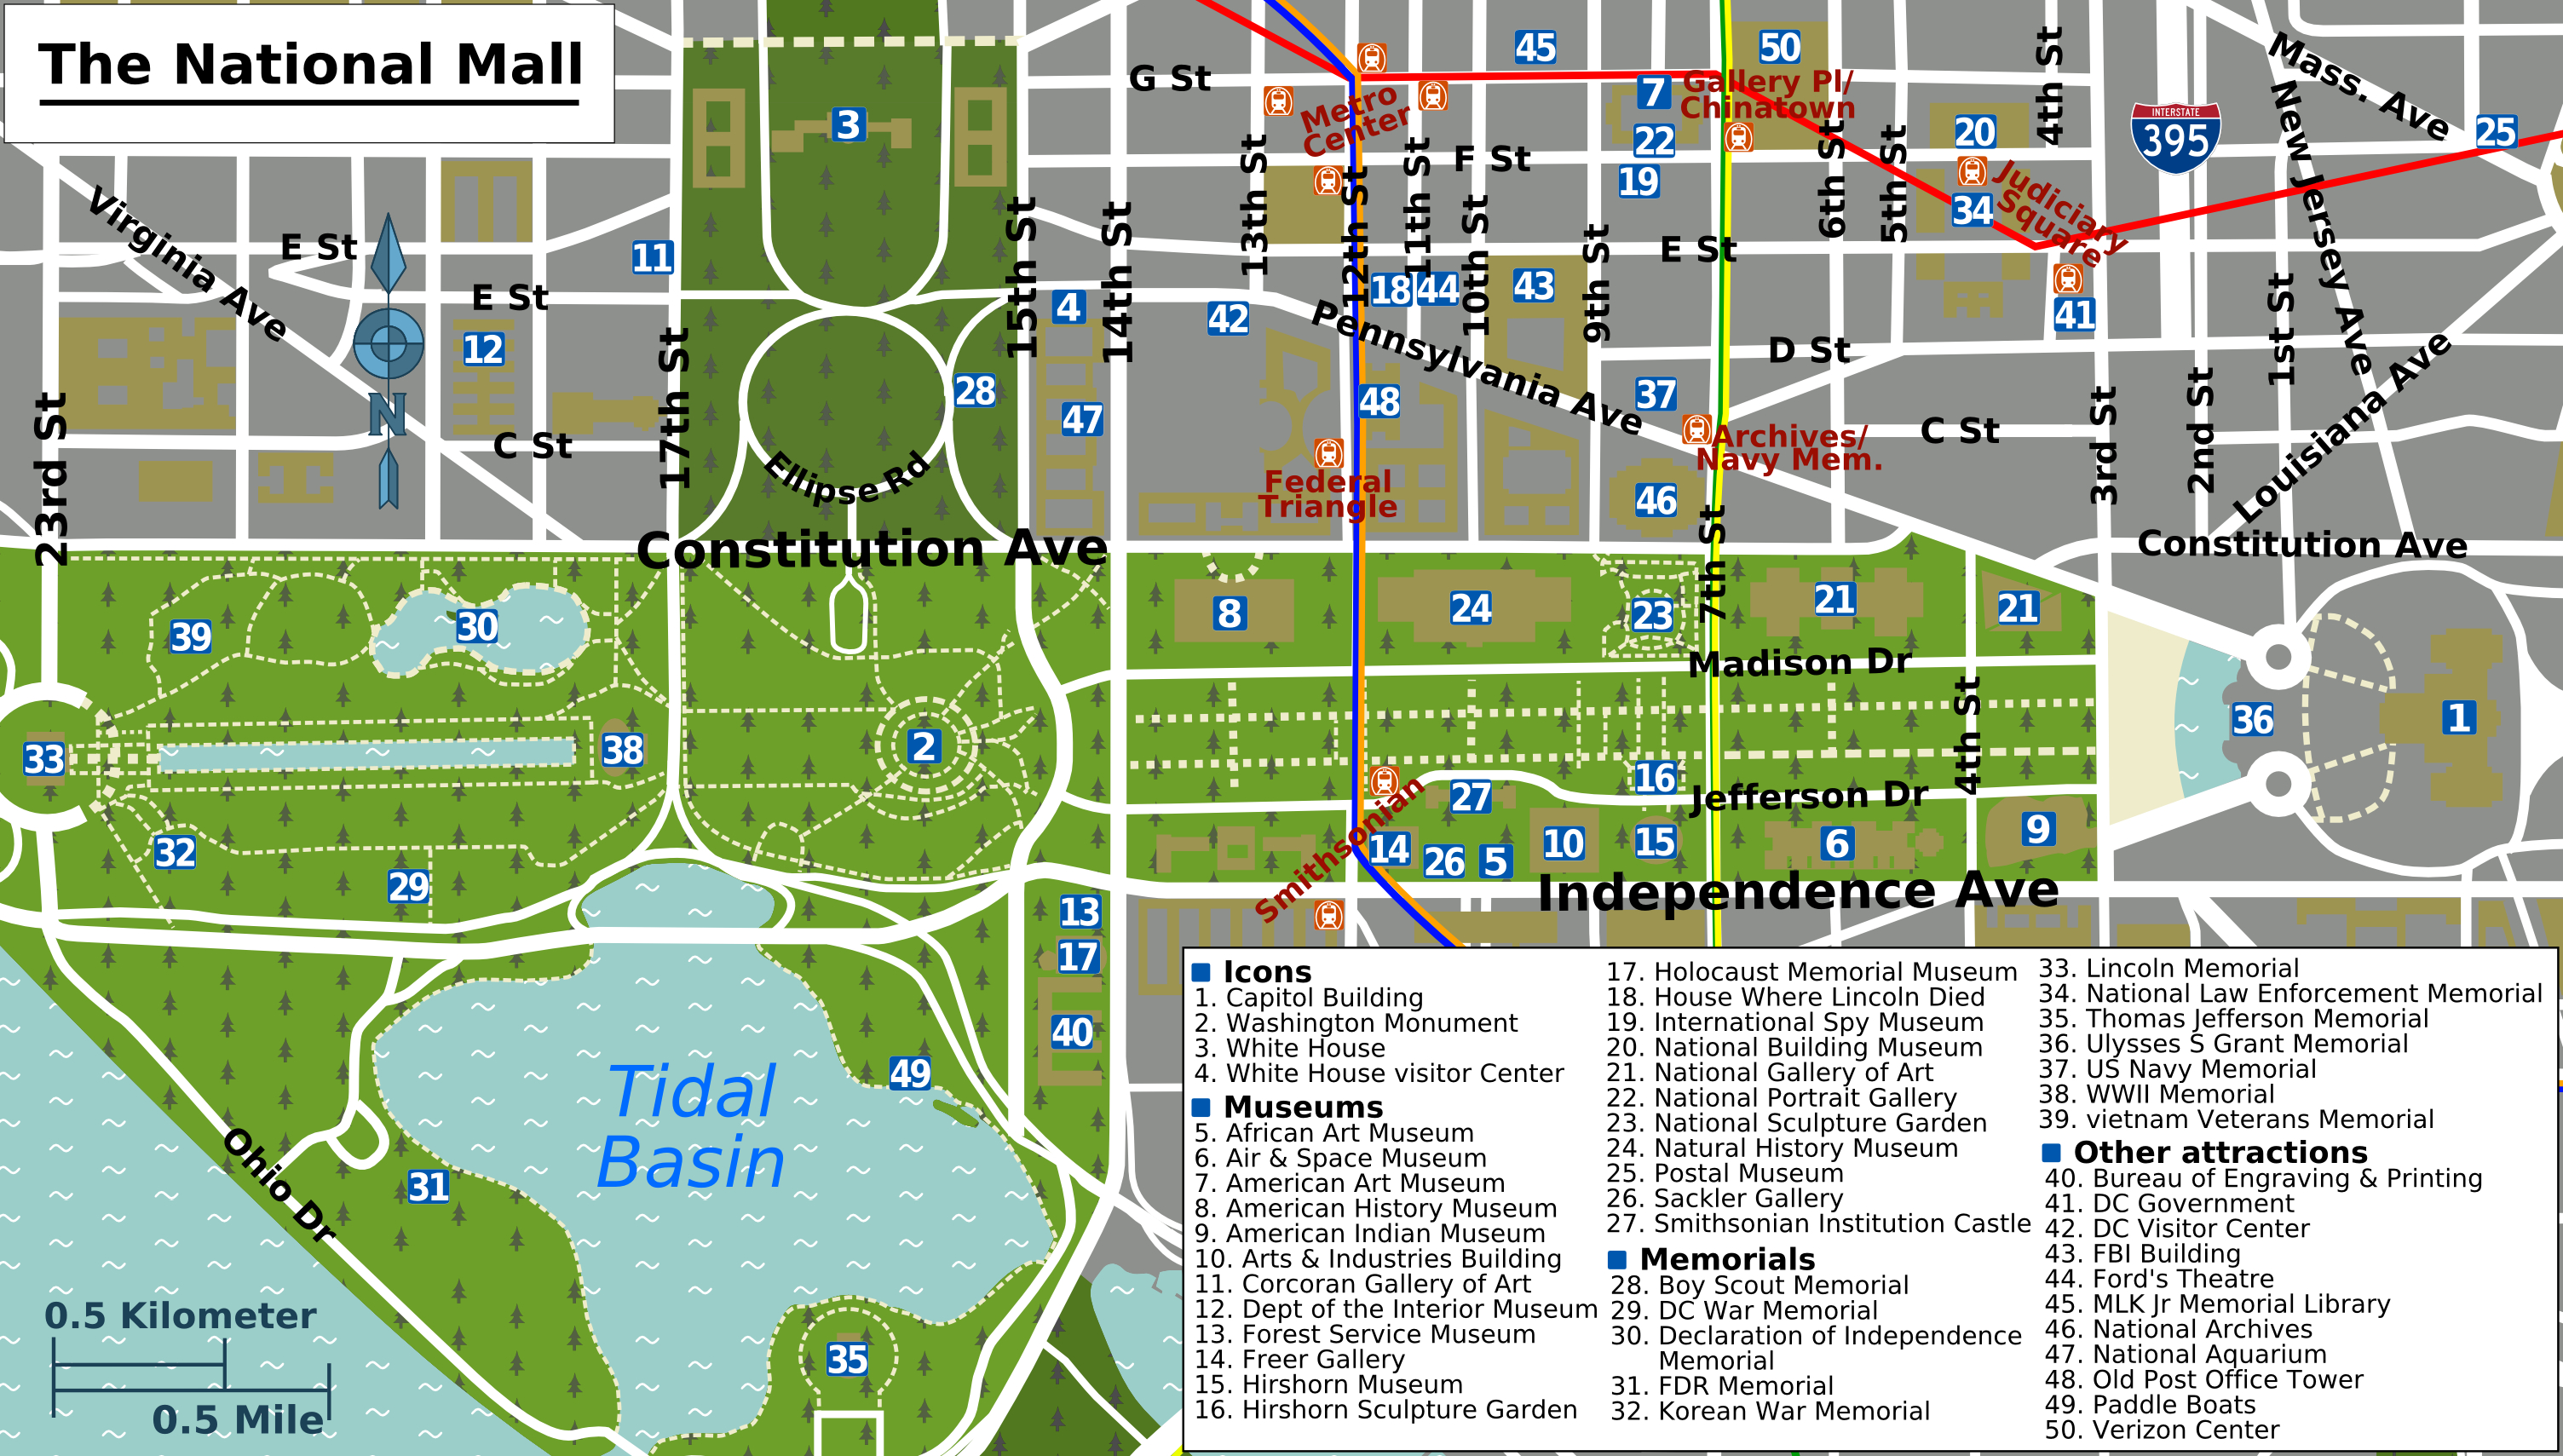 Printable Map Washington Dc | National Mall Map - Washington Dc - Printable Washington Dc Metro Map